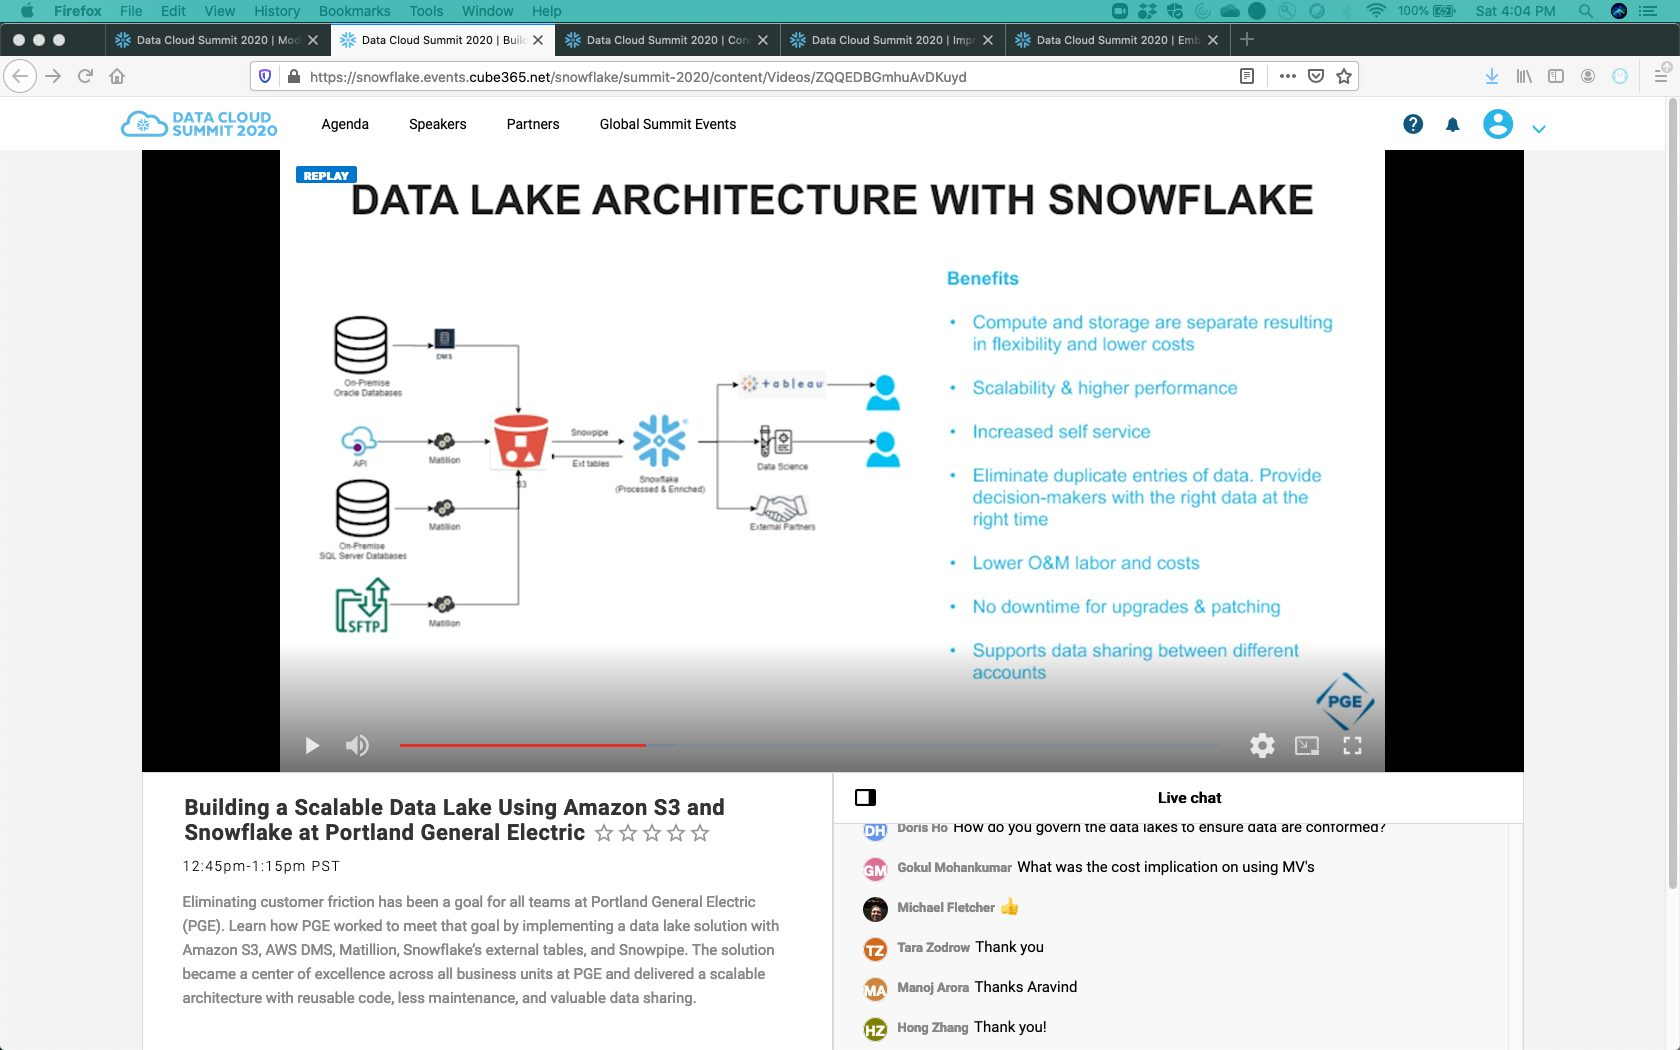 Building Scalable Data Lake On Snowflake Pge